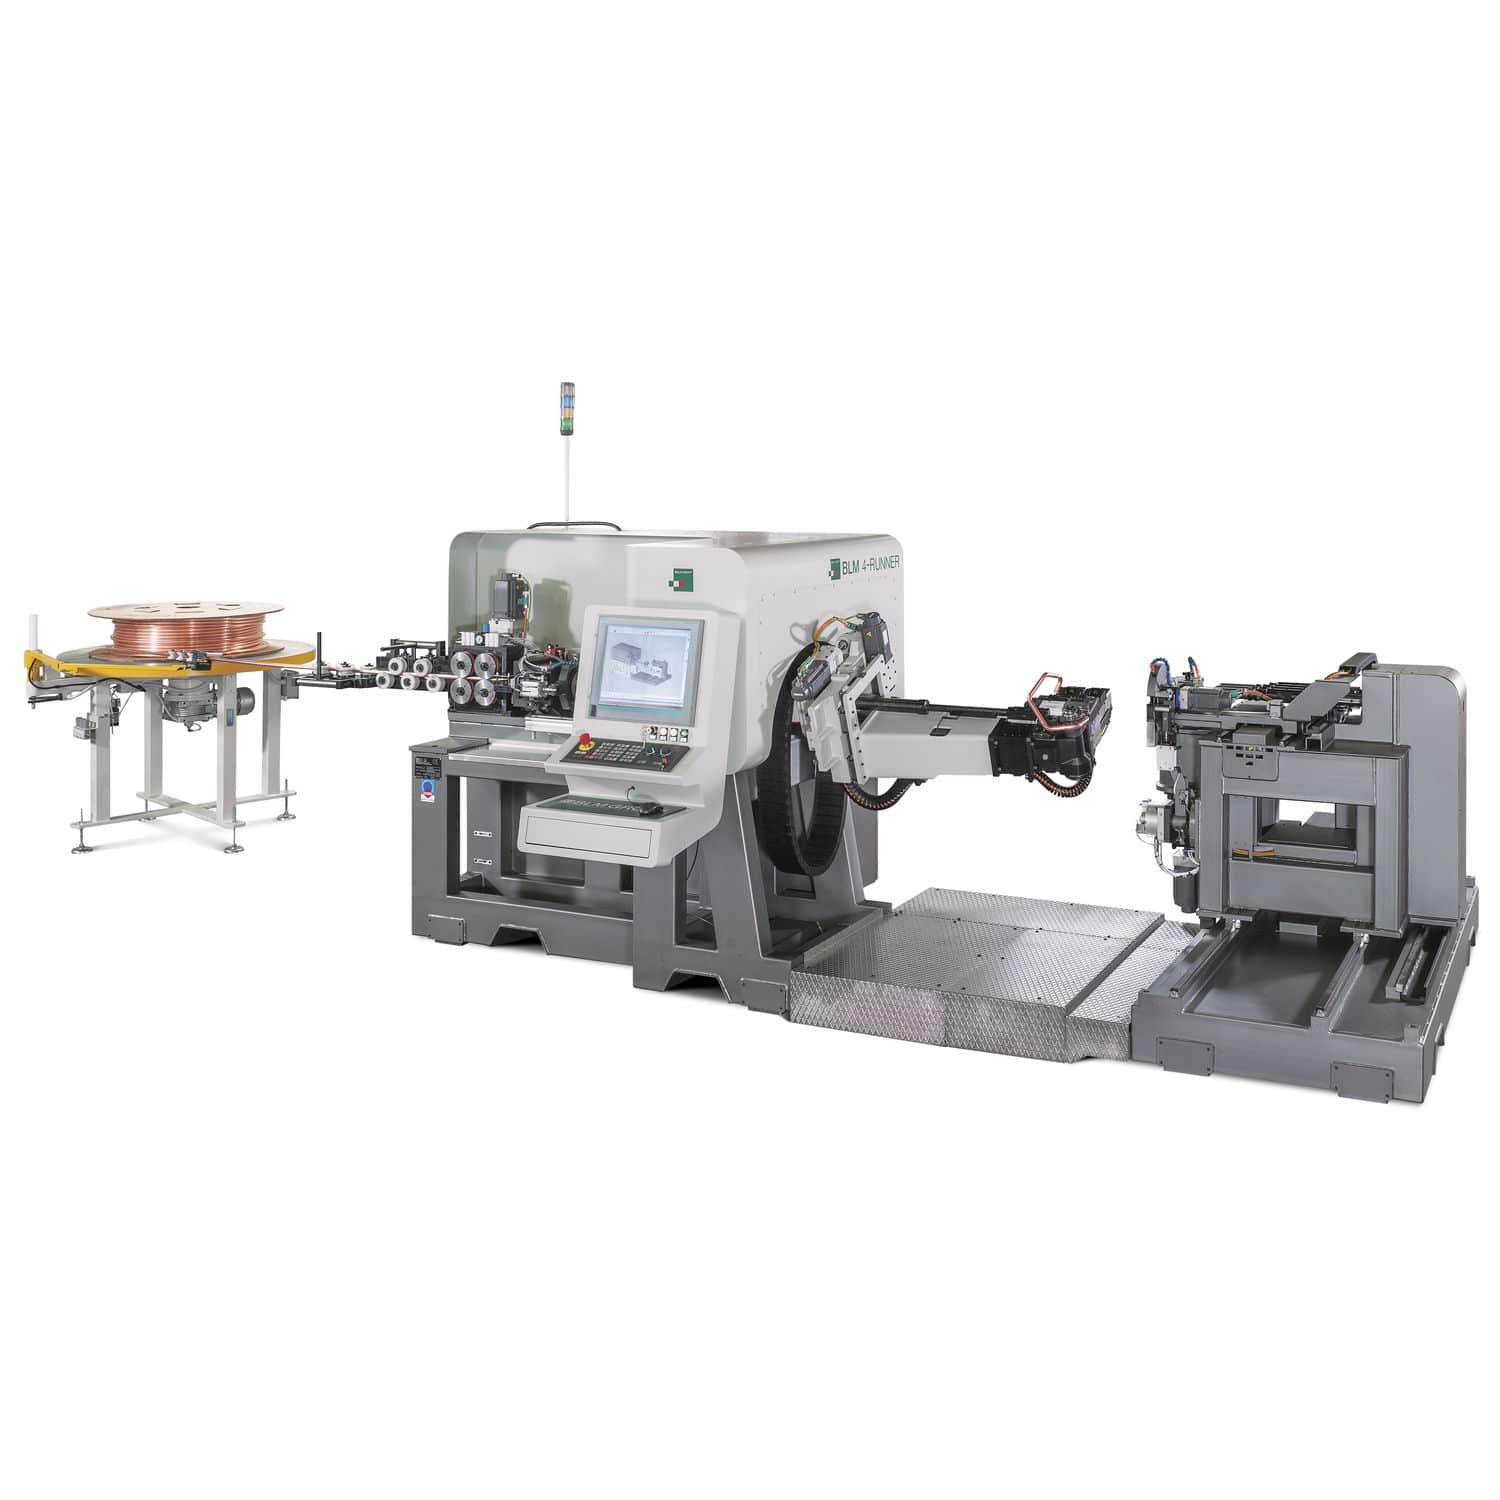 Electric bending machine / for tubes / CNC / rolling - 4-RUNNER ...